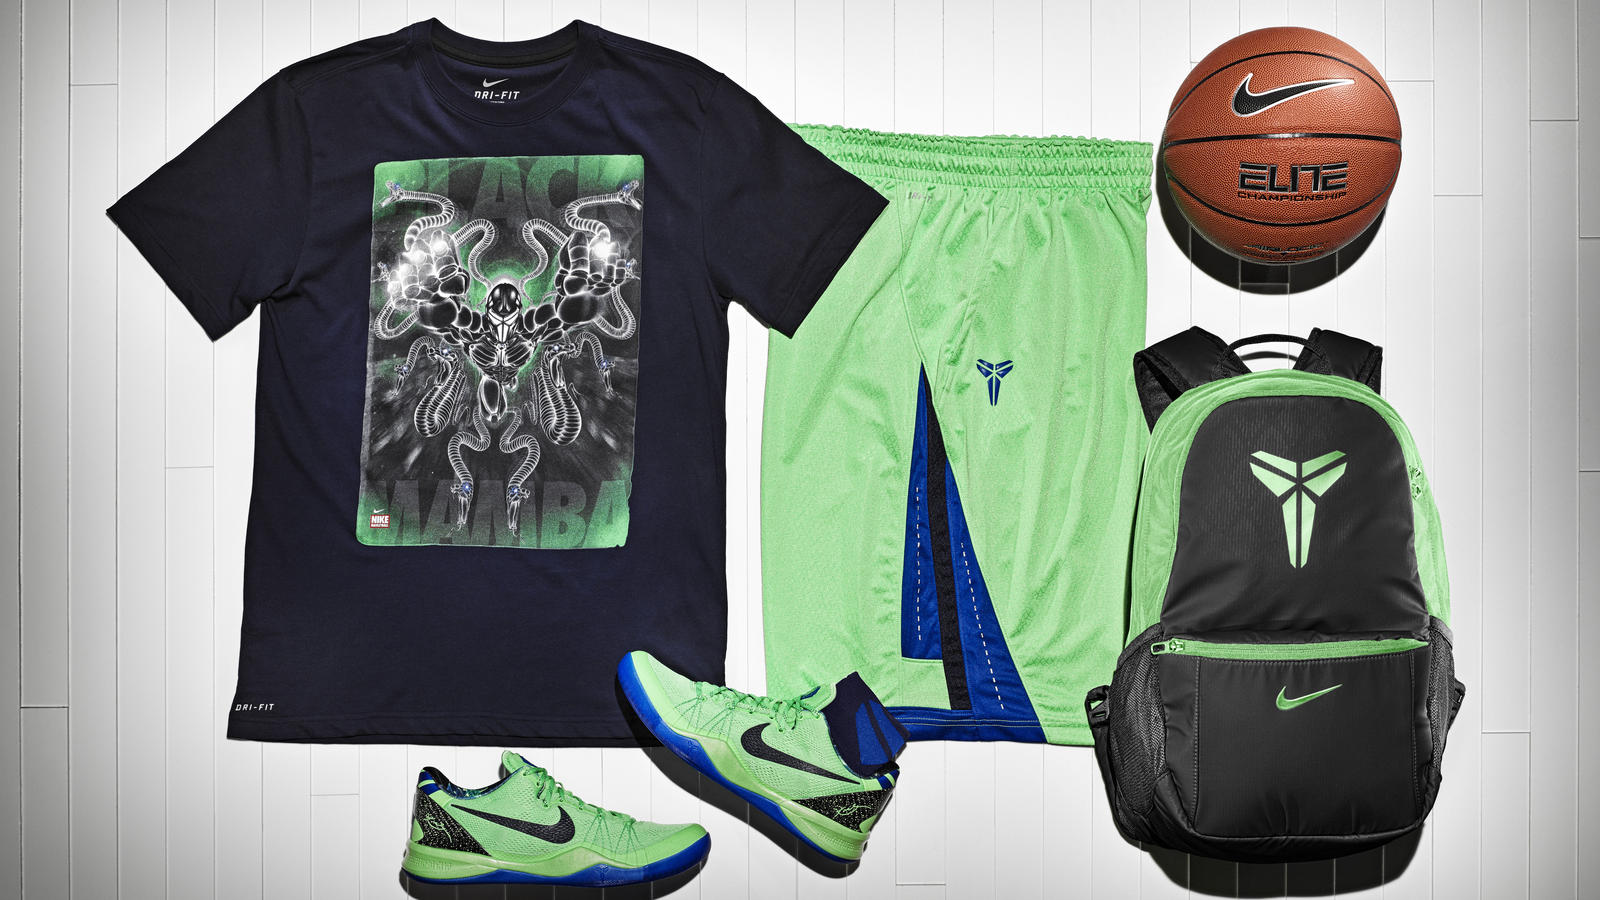 13-190_nike_kobe_gear_up_group-03